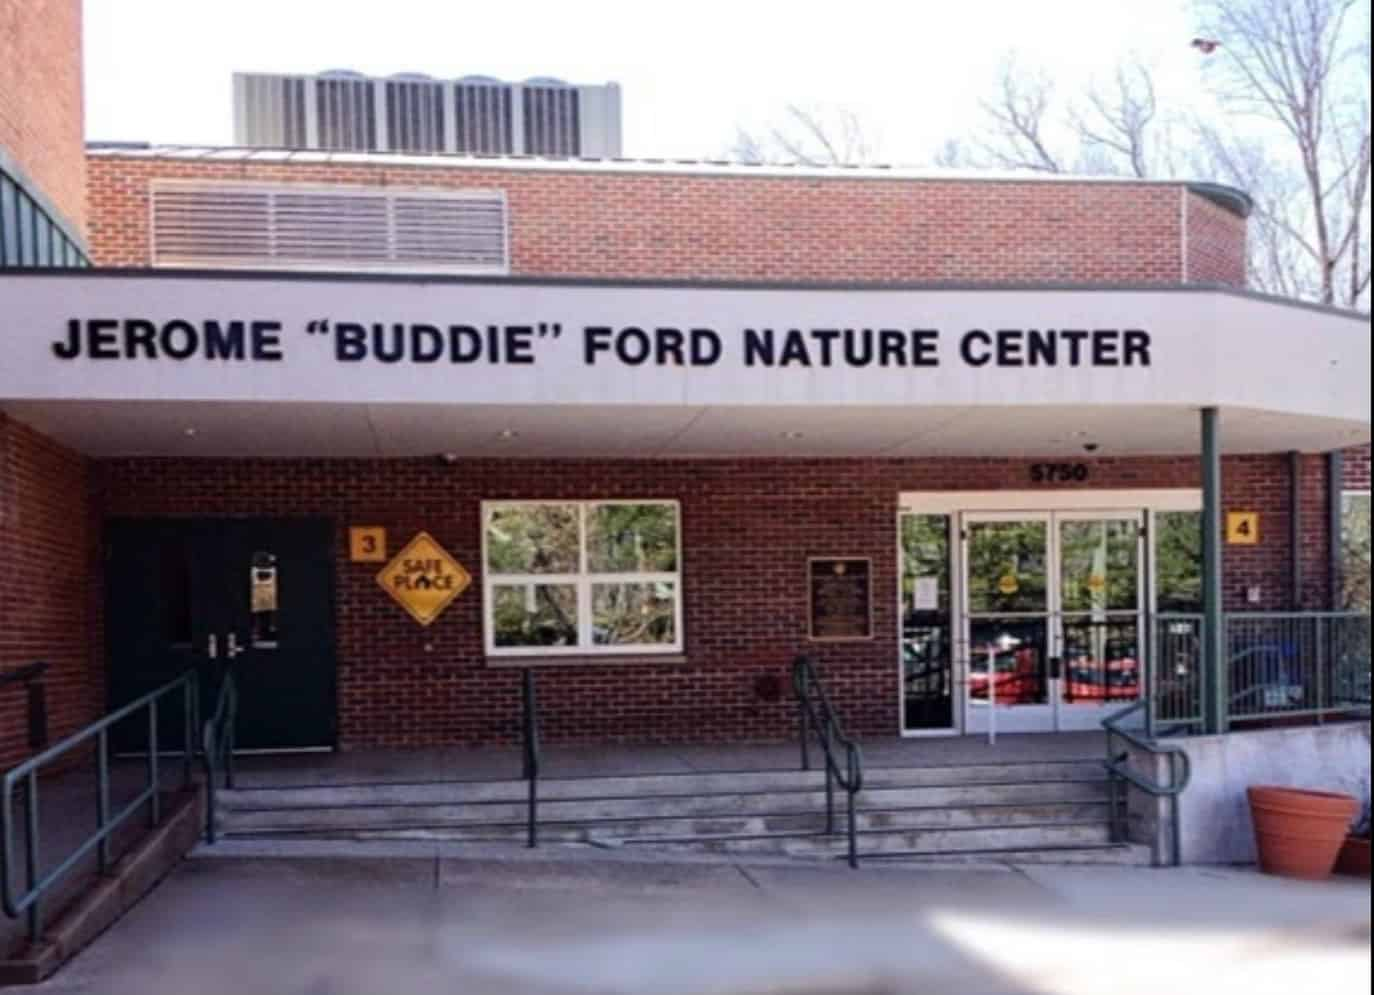 The Jerome 'Buddie' Ford Nature Center, located at 5750 Sanger Avenue in Alexandria, Virginia, is closed this weekend due to an air conditioning system failure. The Nature Center is expected to reopen to the public on Wednesday, June 6, at 10 a.m.